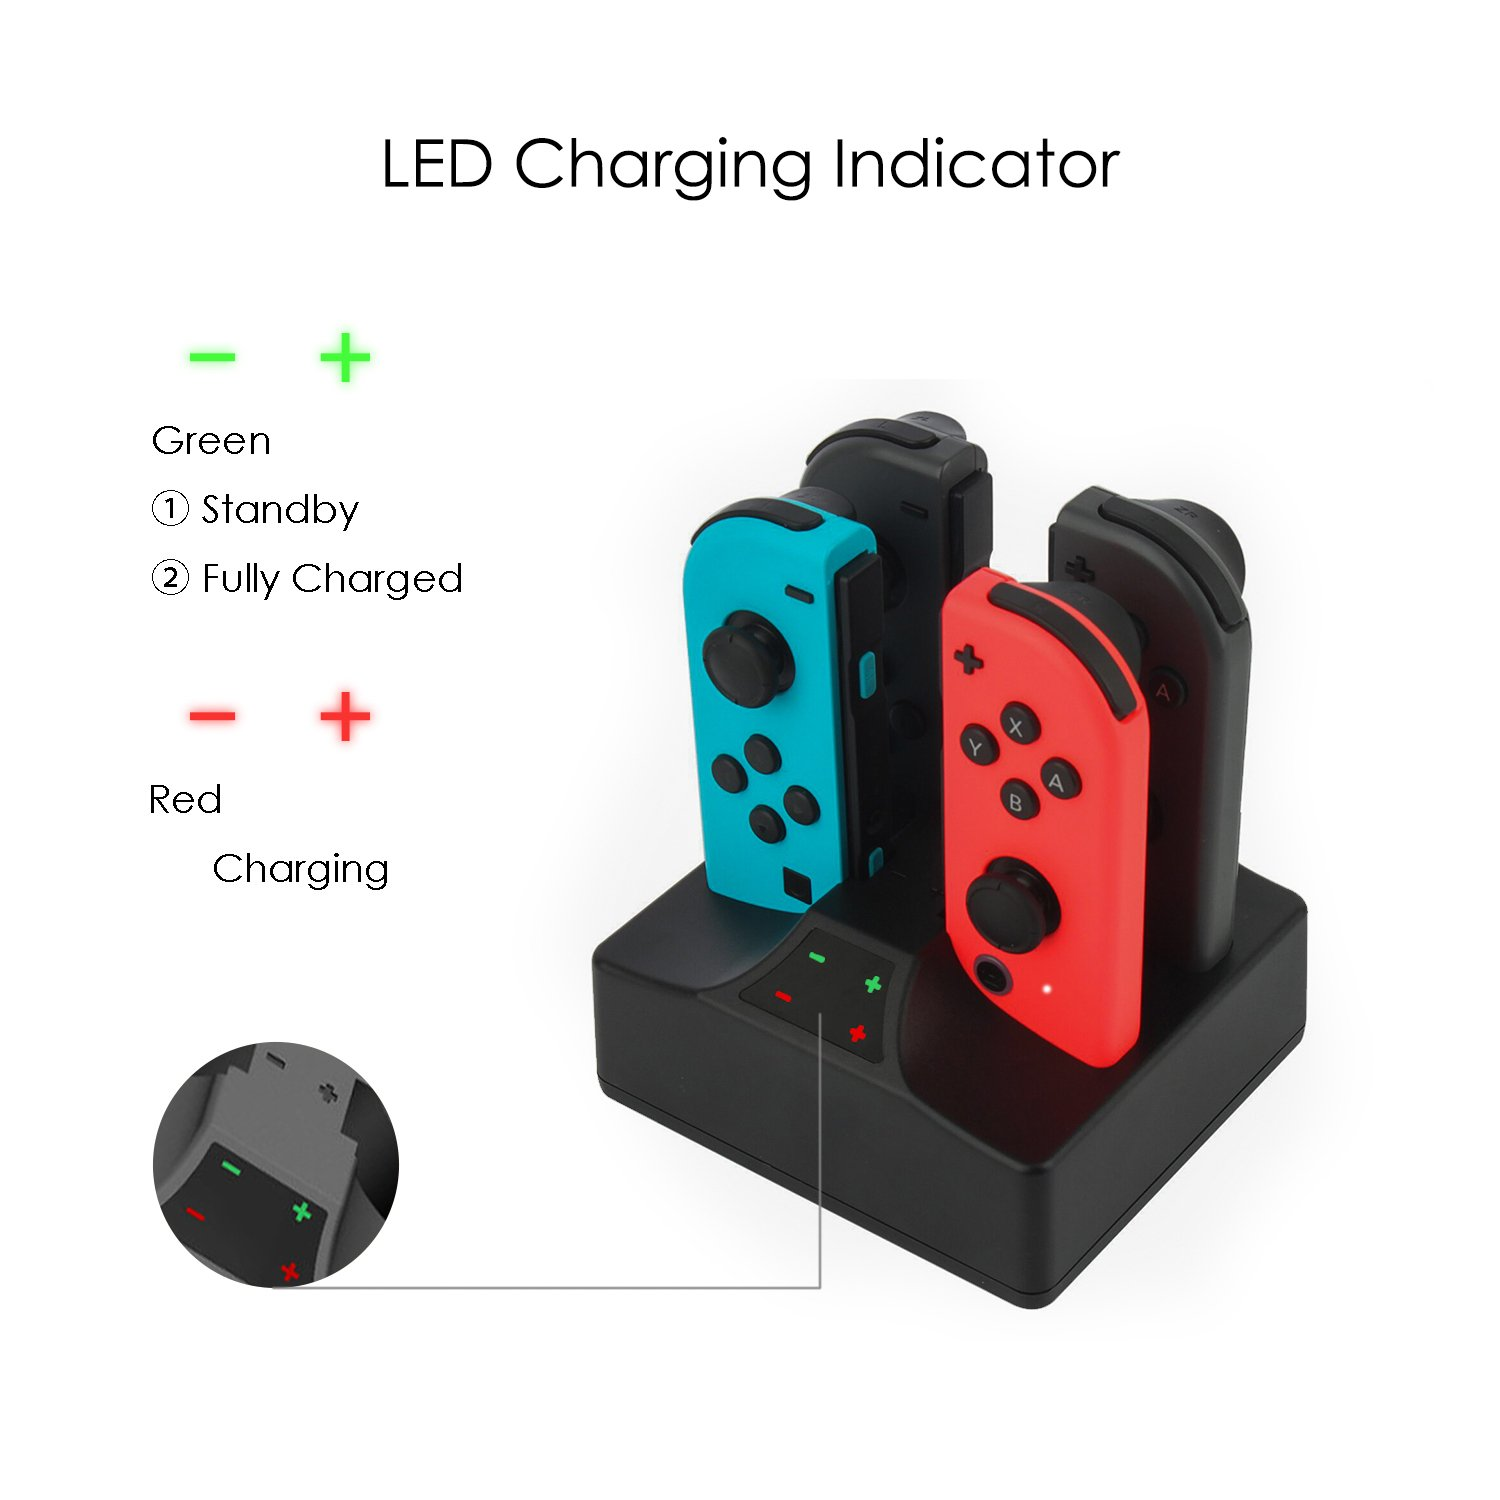 YCCTEAM Charging Dock for Nintendo Switch Joy-con Controllers, 5V/1A Charger Stand Station Fast Charging Portable Power Supply with 1.5 M Type C Cable